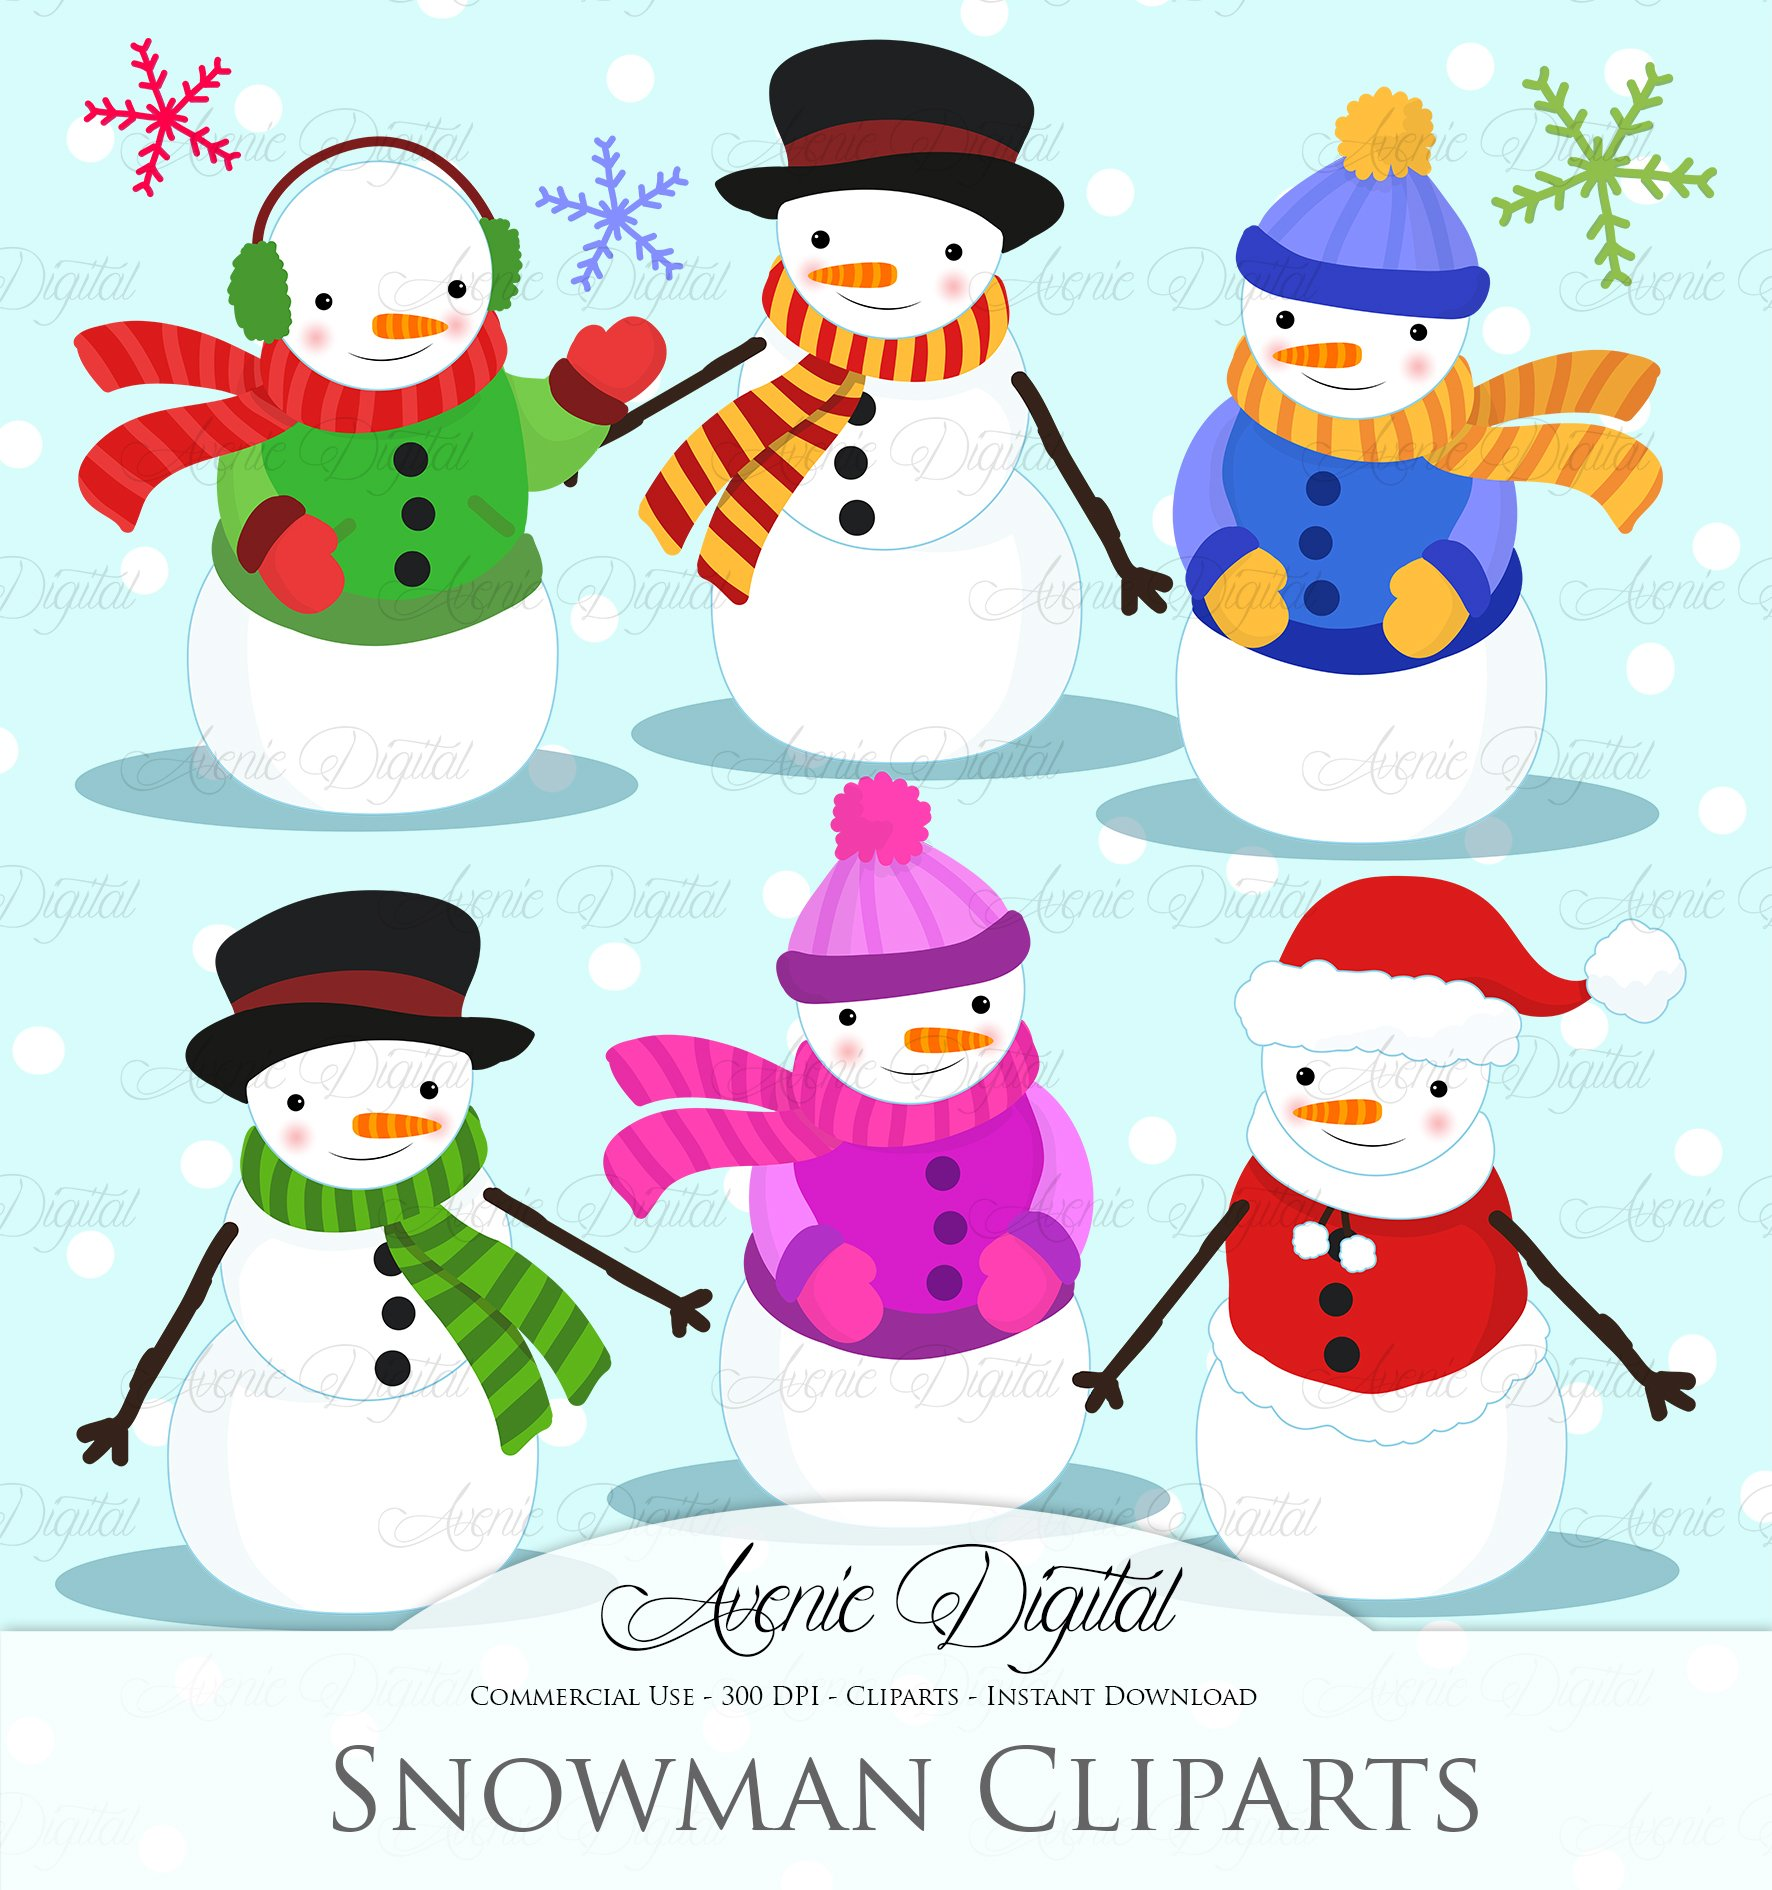 Snowflakes clipart commercial use ~ Illustrations on Creative Market